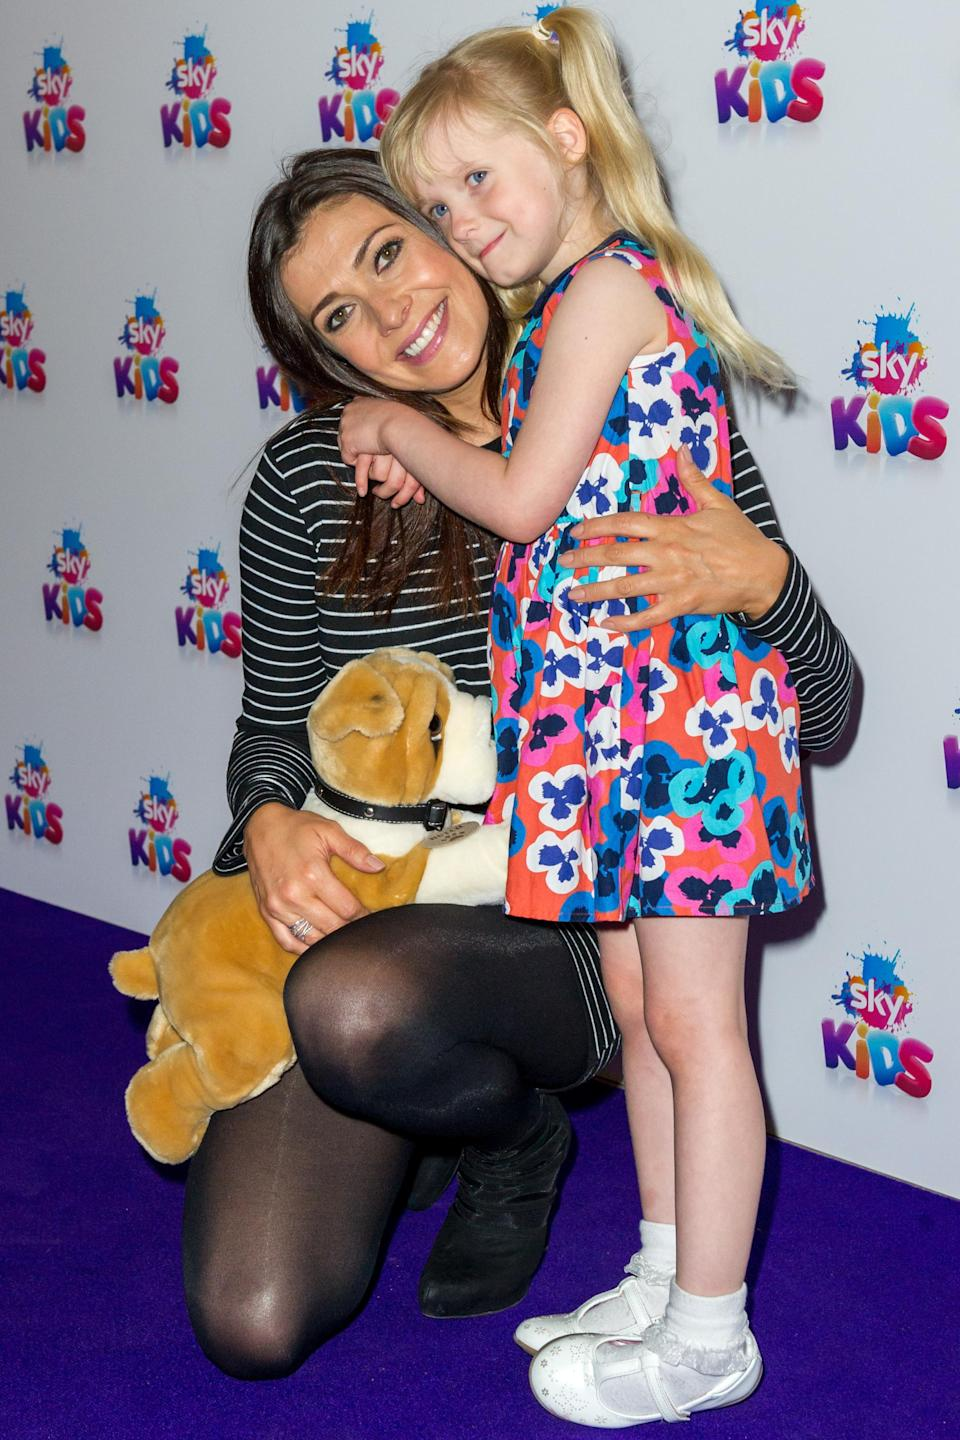 Kym Marsh and her daughter Polly at the Sky Kids app launch (WENN)